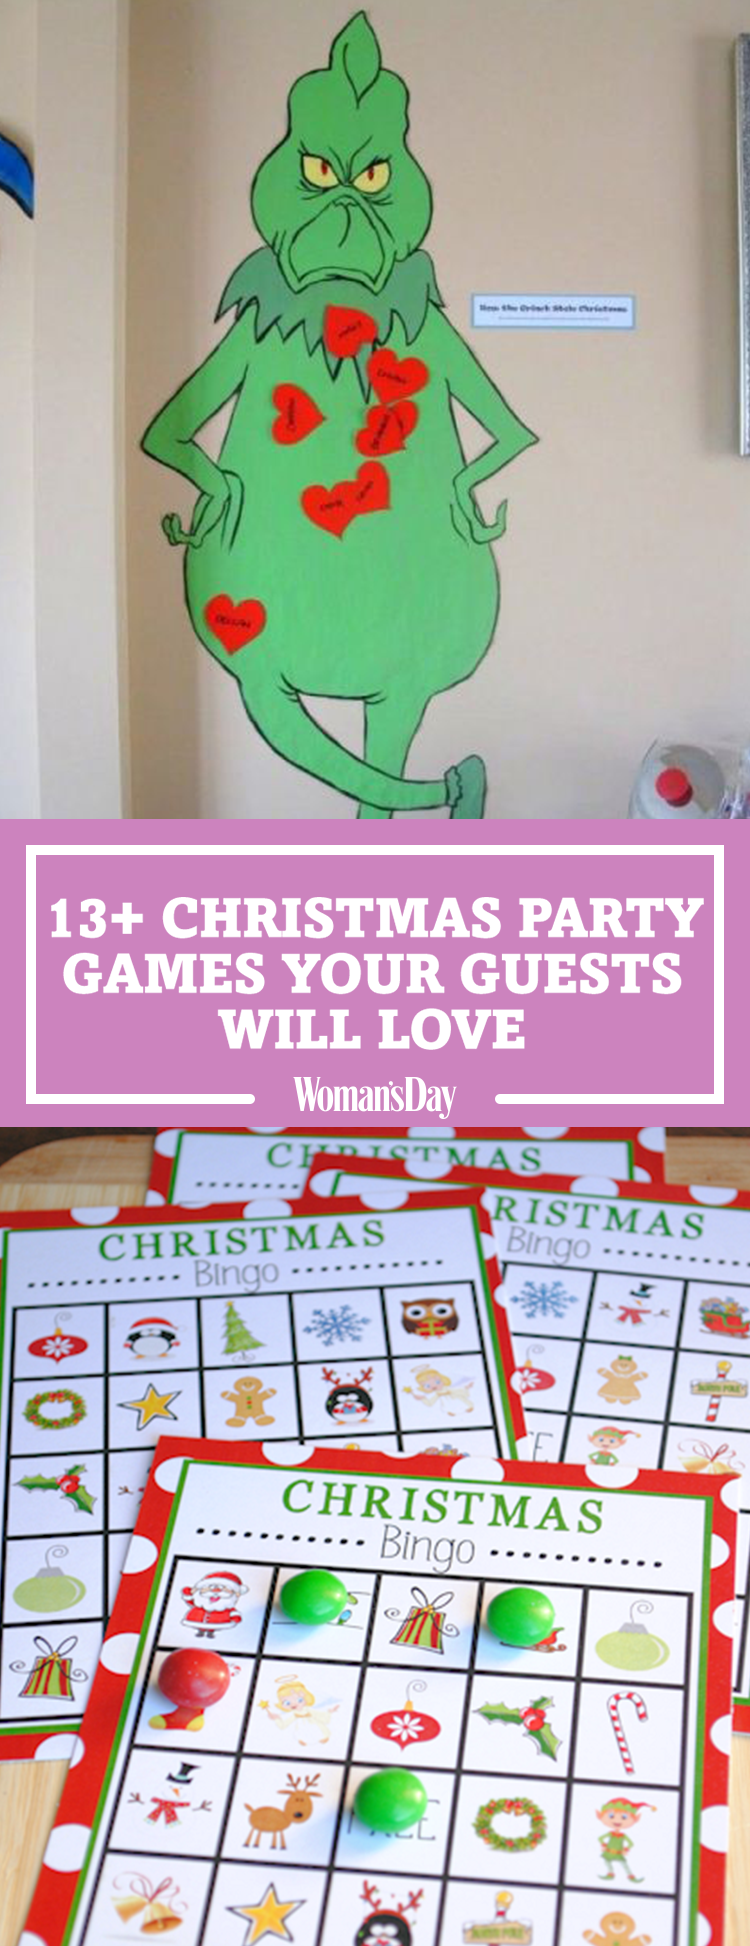 24 fun christmas party games for kids diy holiday party game ideas - Christmas Day Games